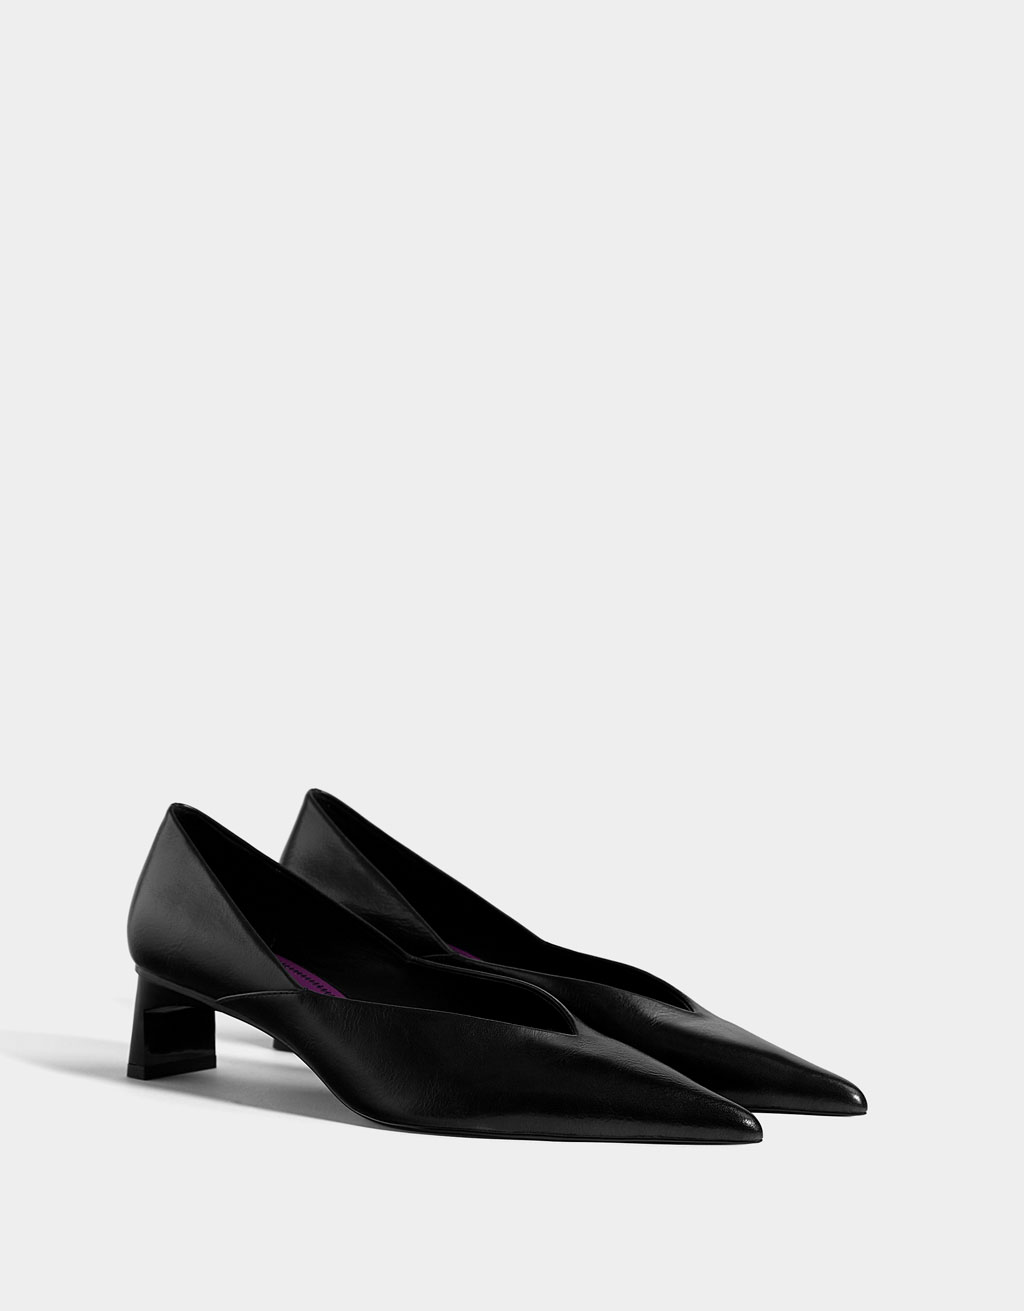 V-vamp mid-heel shoes